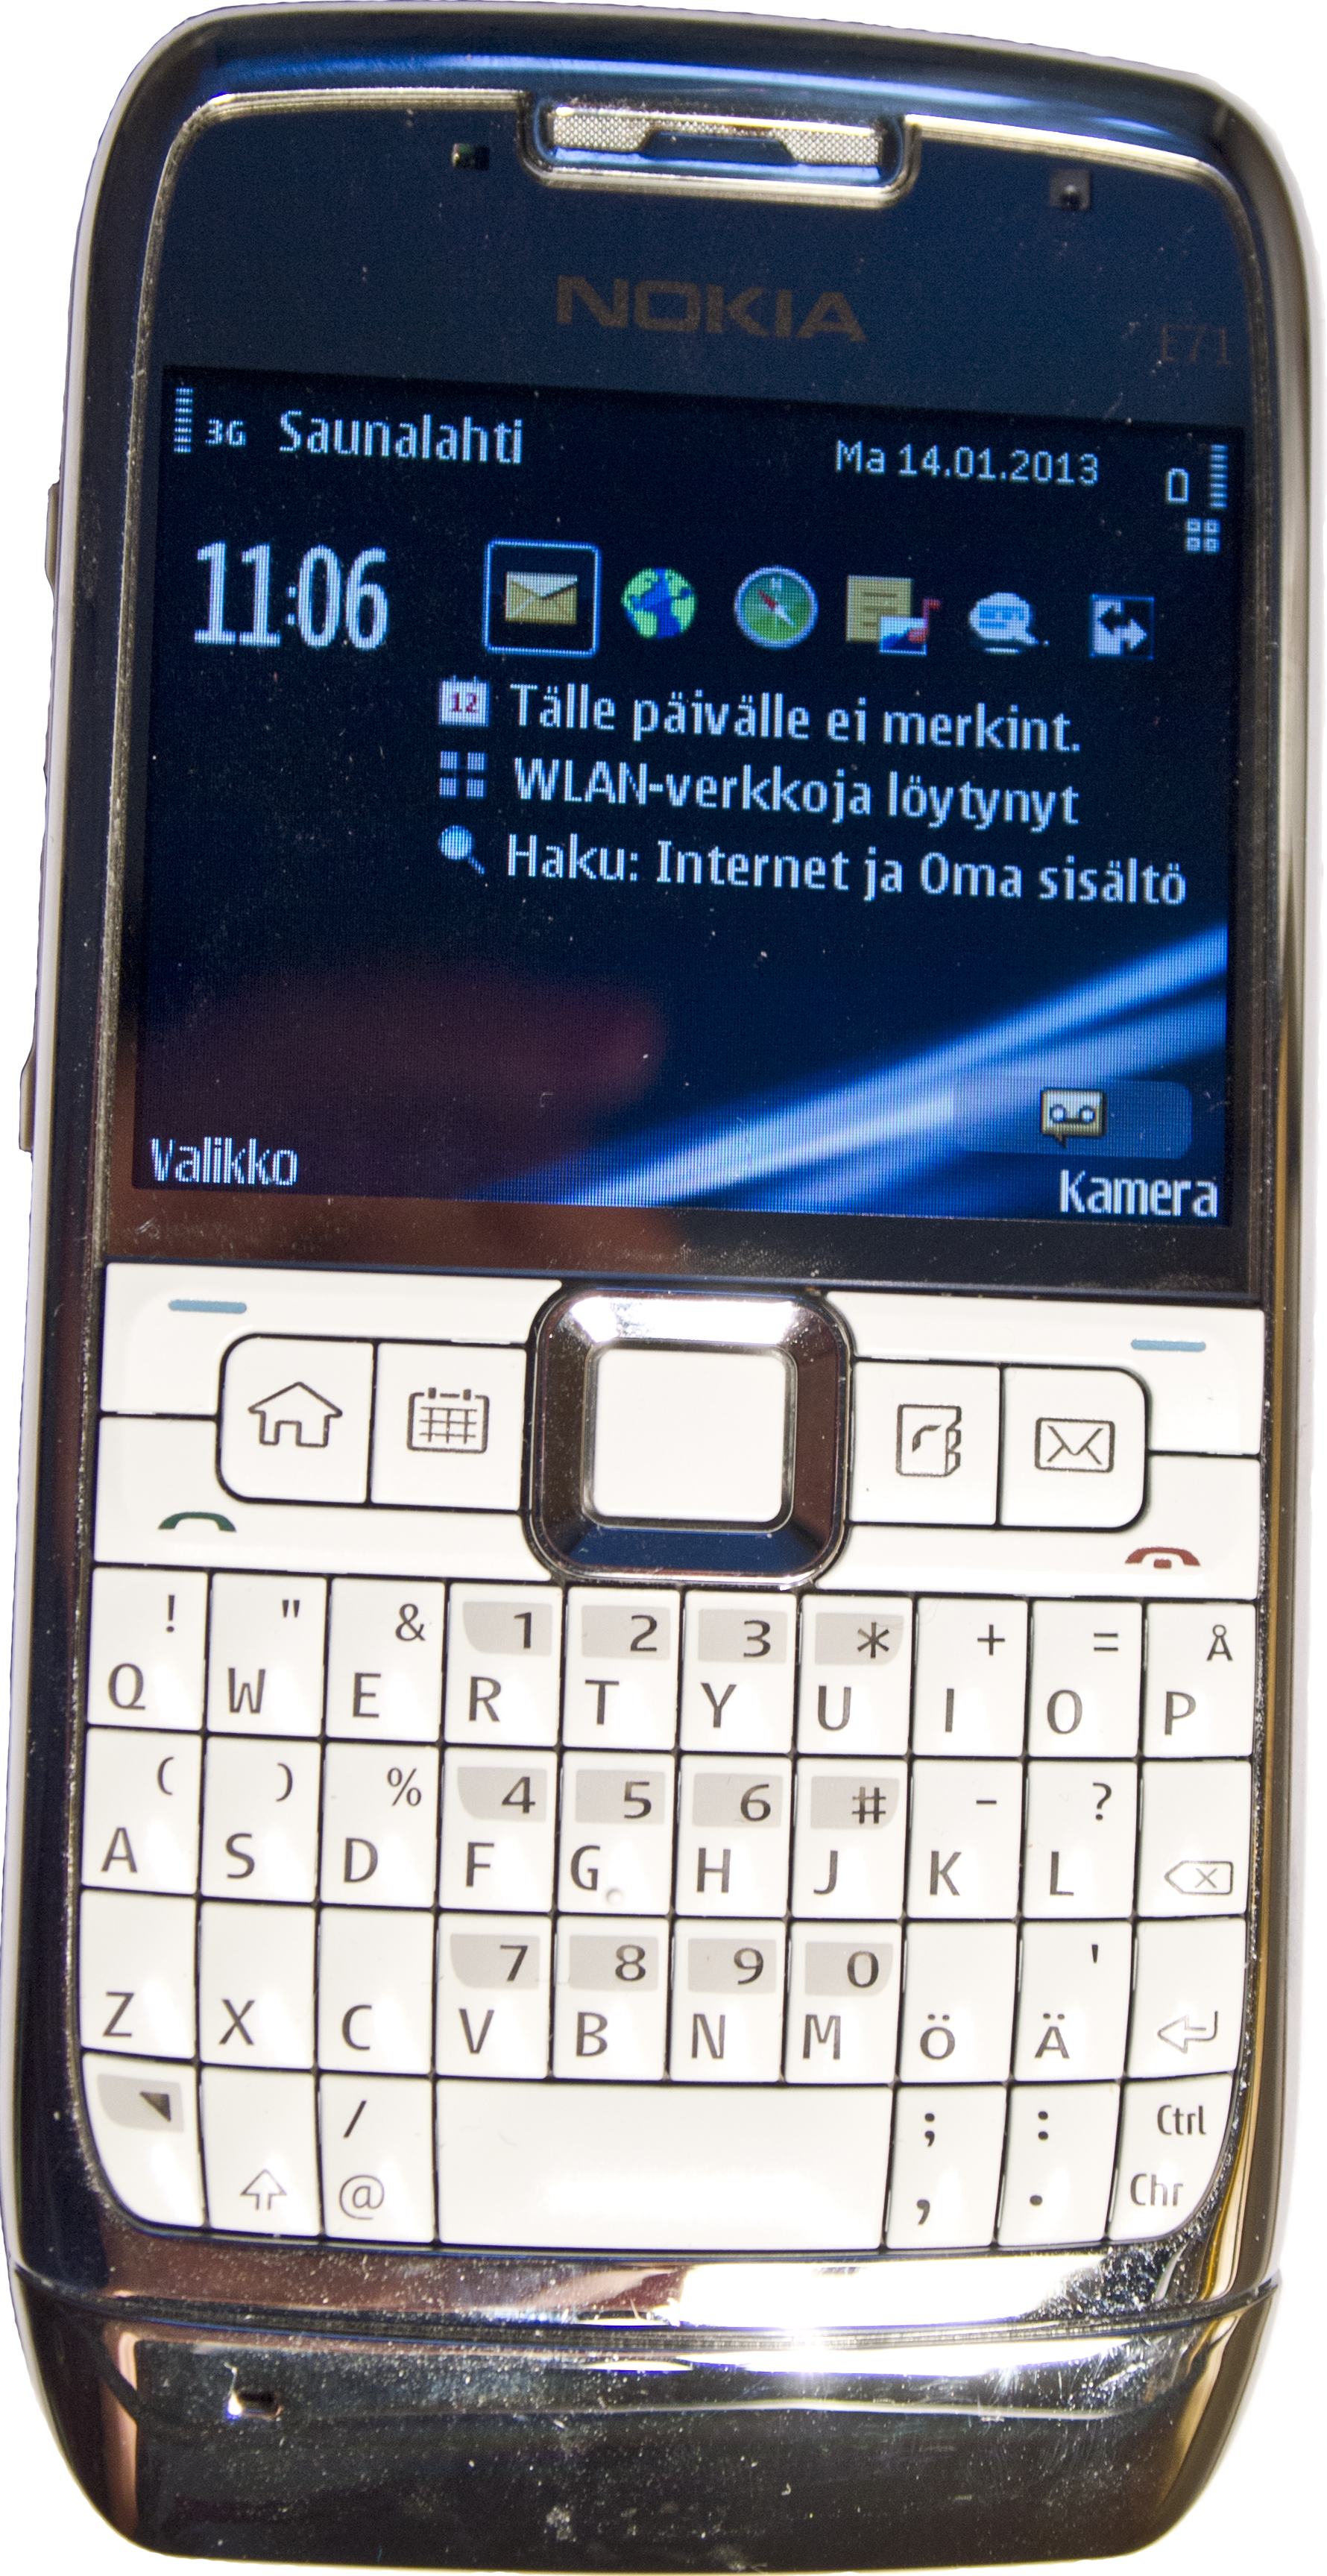 Free download blueftp for nokia e71 lostcenter.